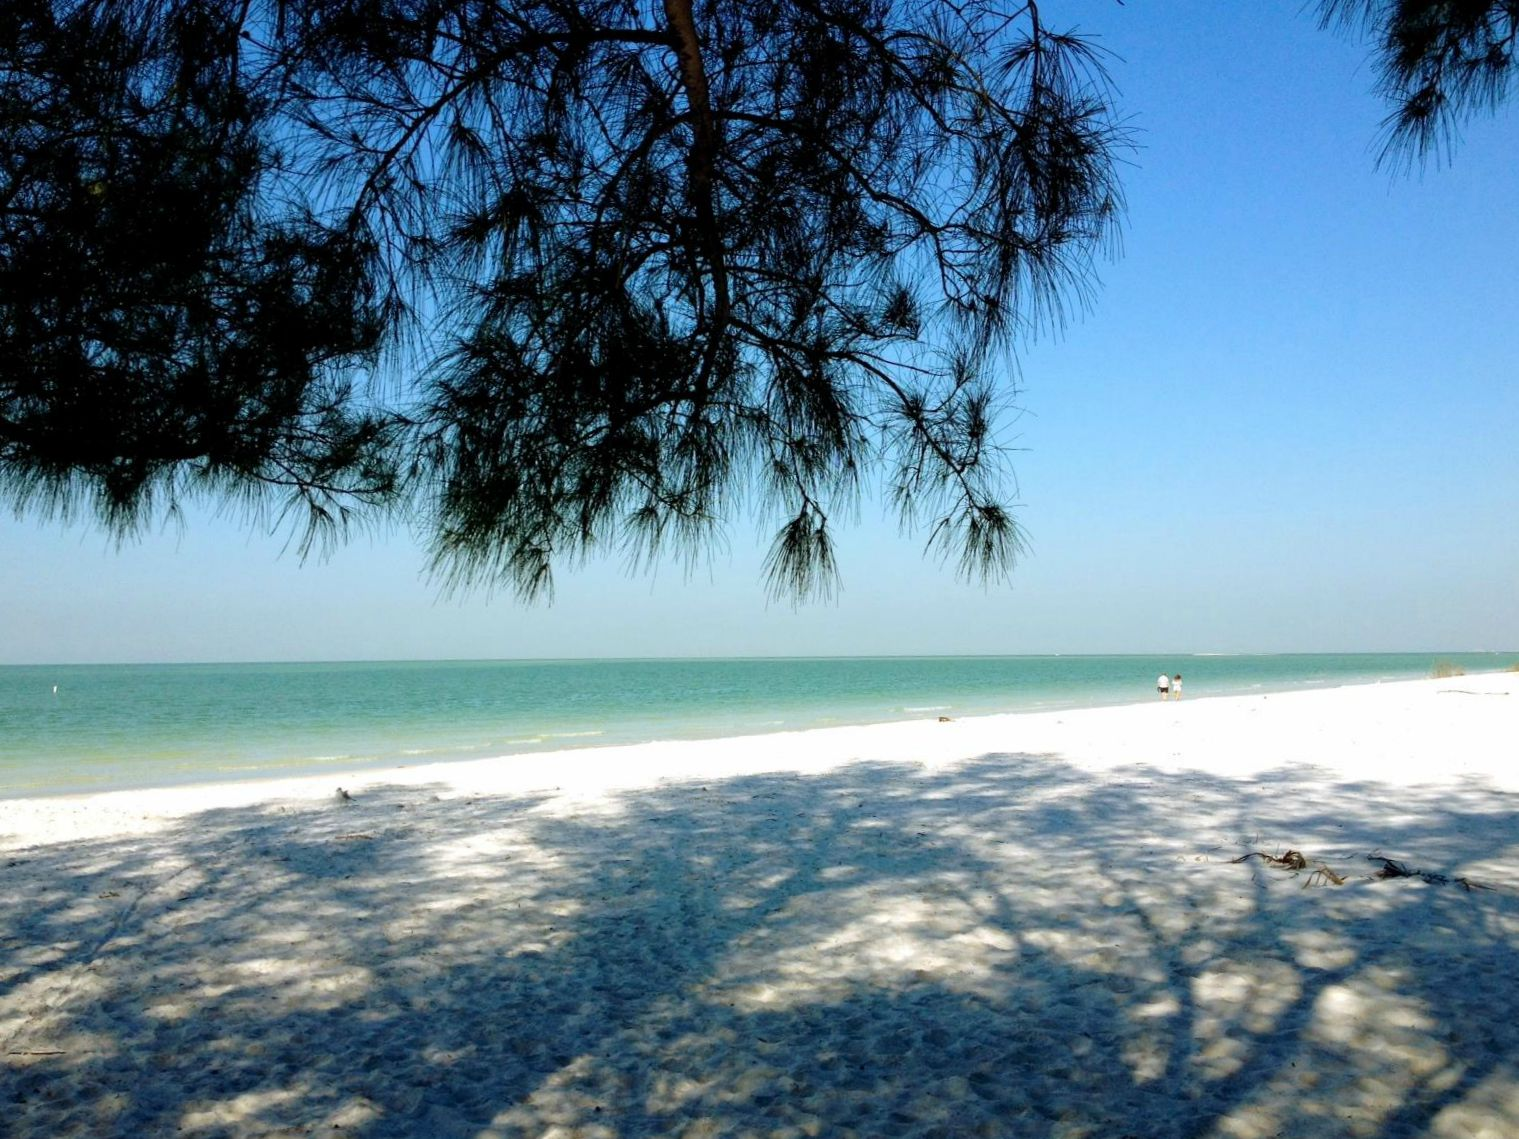 Pine-shaded spot on white-sand beach at Fort De Soto State Park near Clearwater, Florida